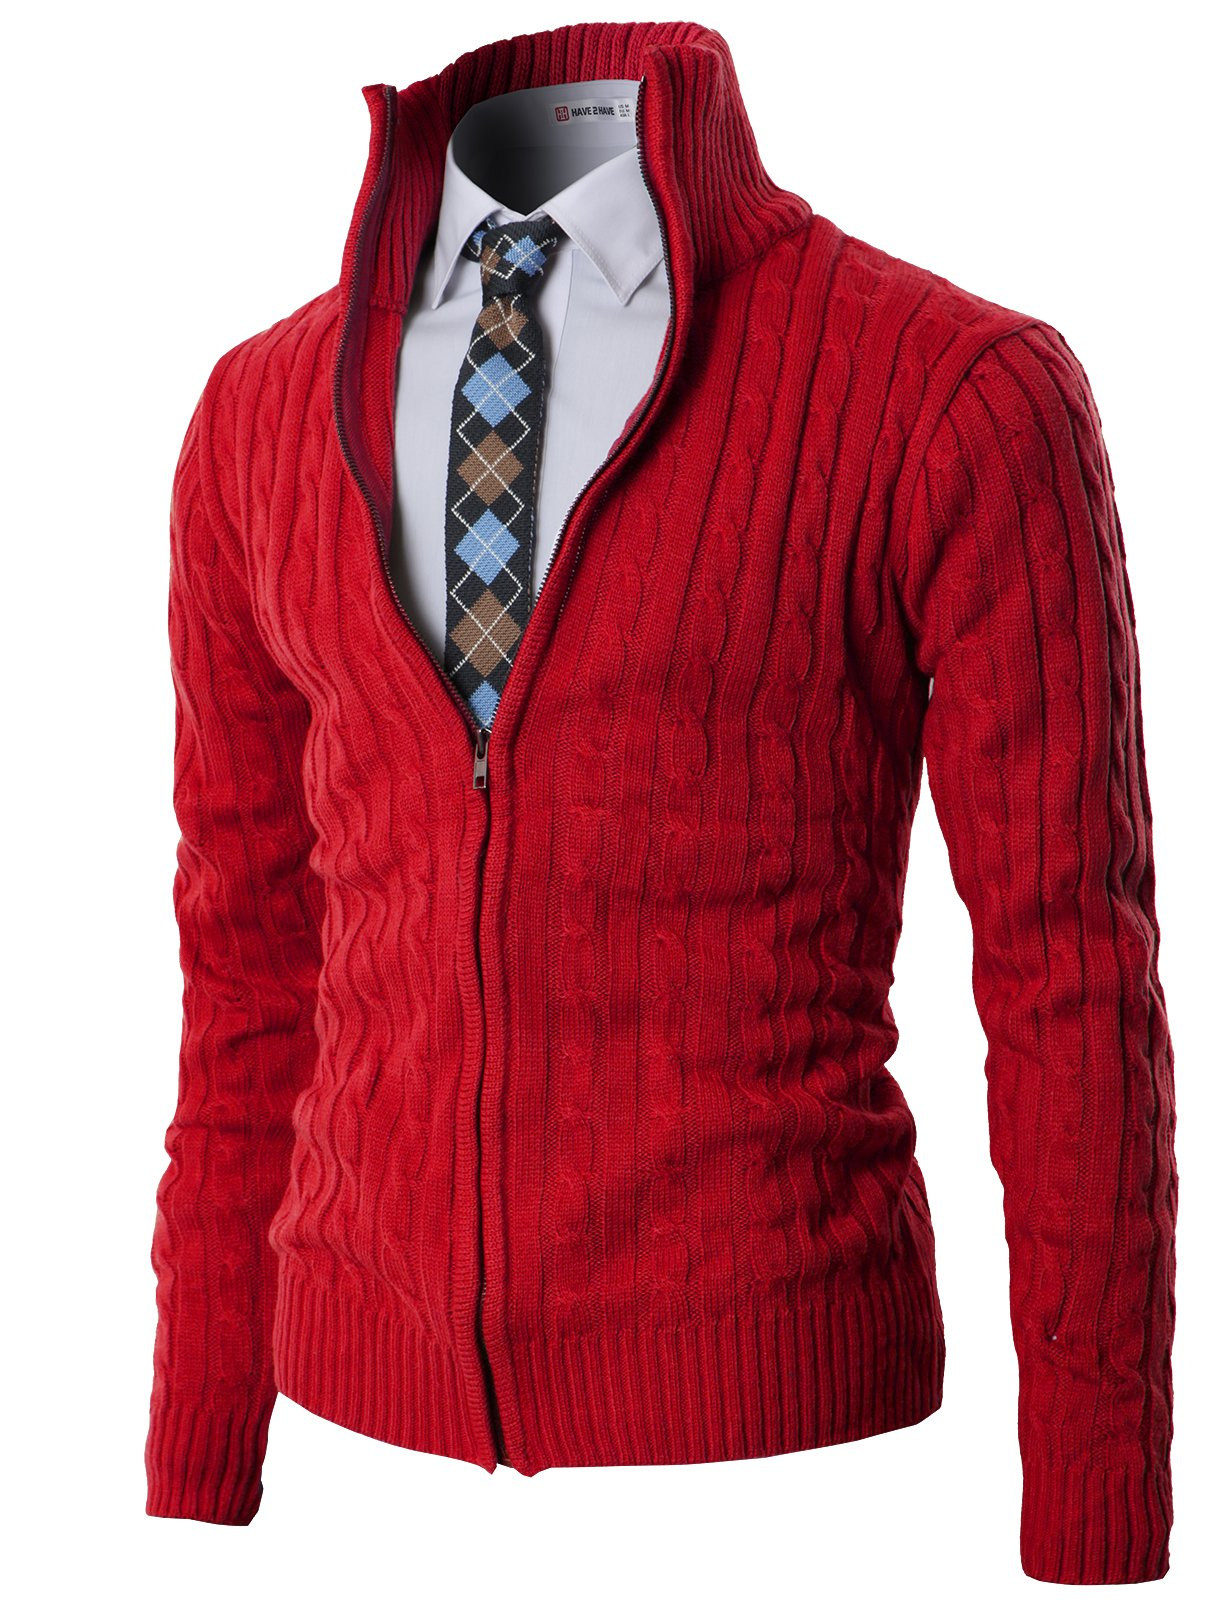 H2H Mens Casual Knitted Cardigan Zip-up with Twisted Pattern - US L (Asia XL) - Kmocal017-red